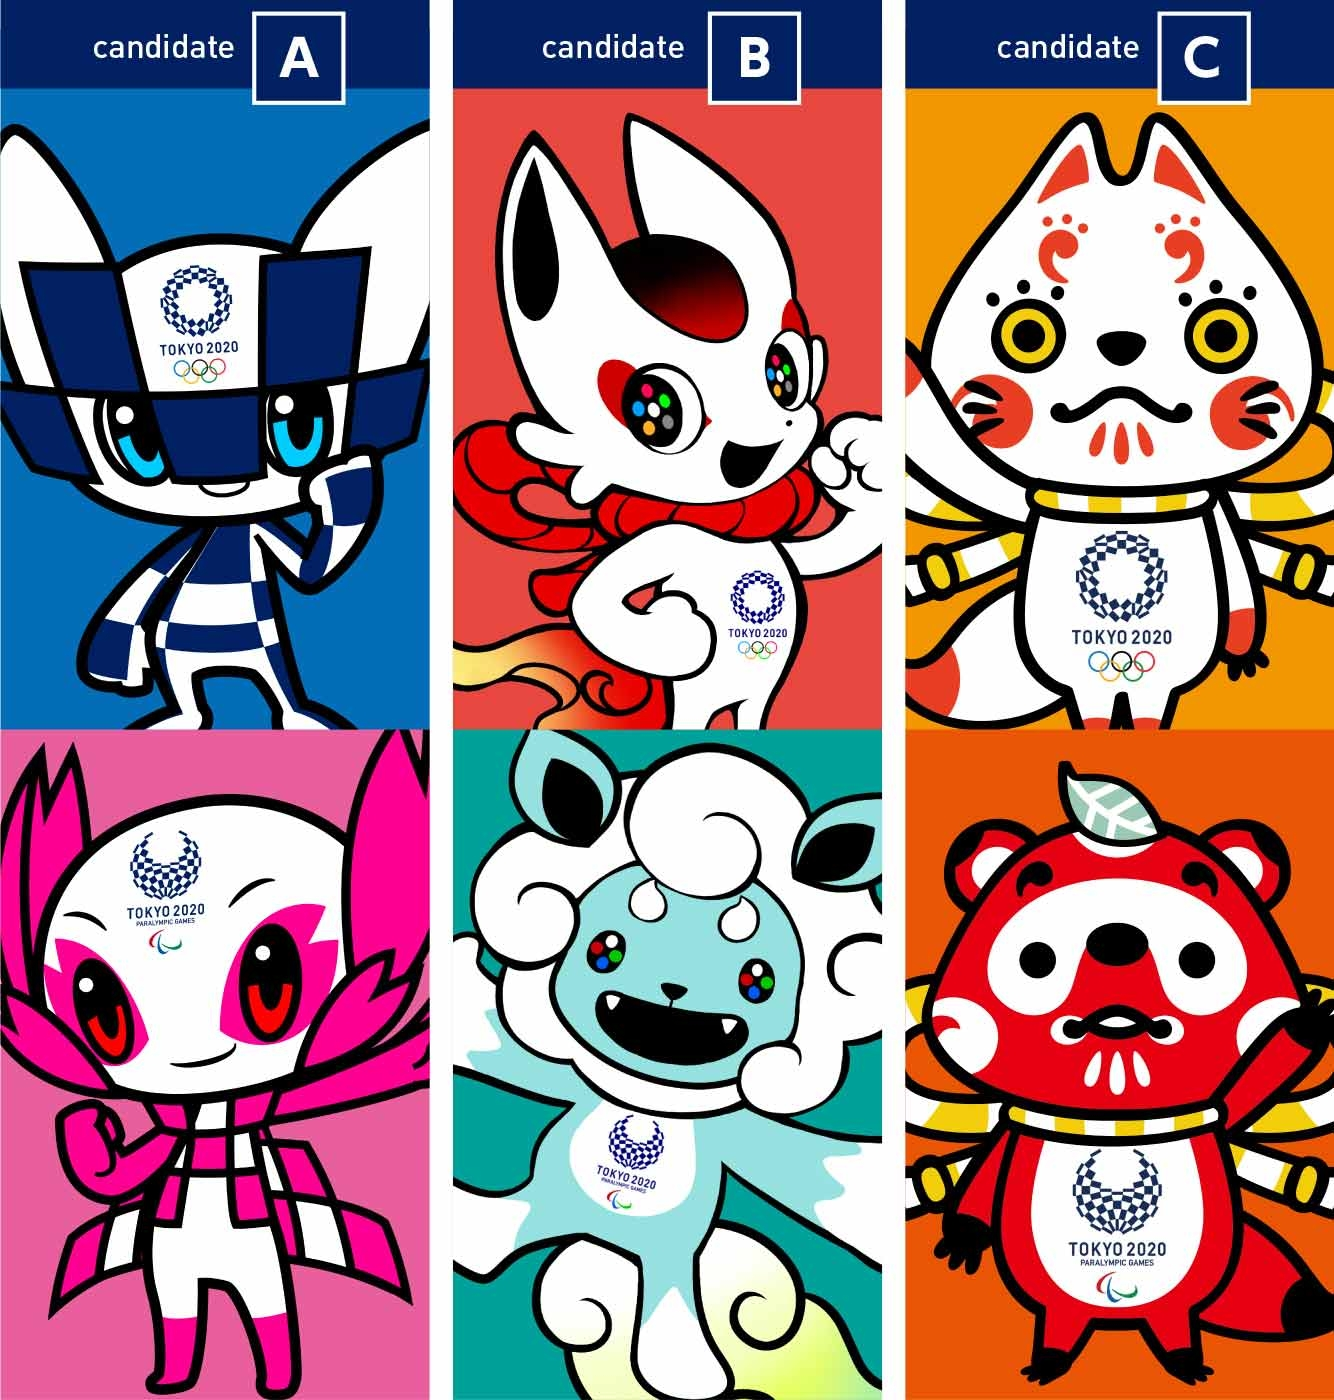 The Tokyo 2020 Olympic Mascot Candidates Unveiled | Spoon